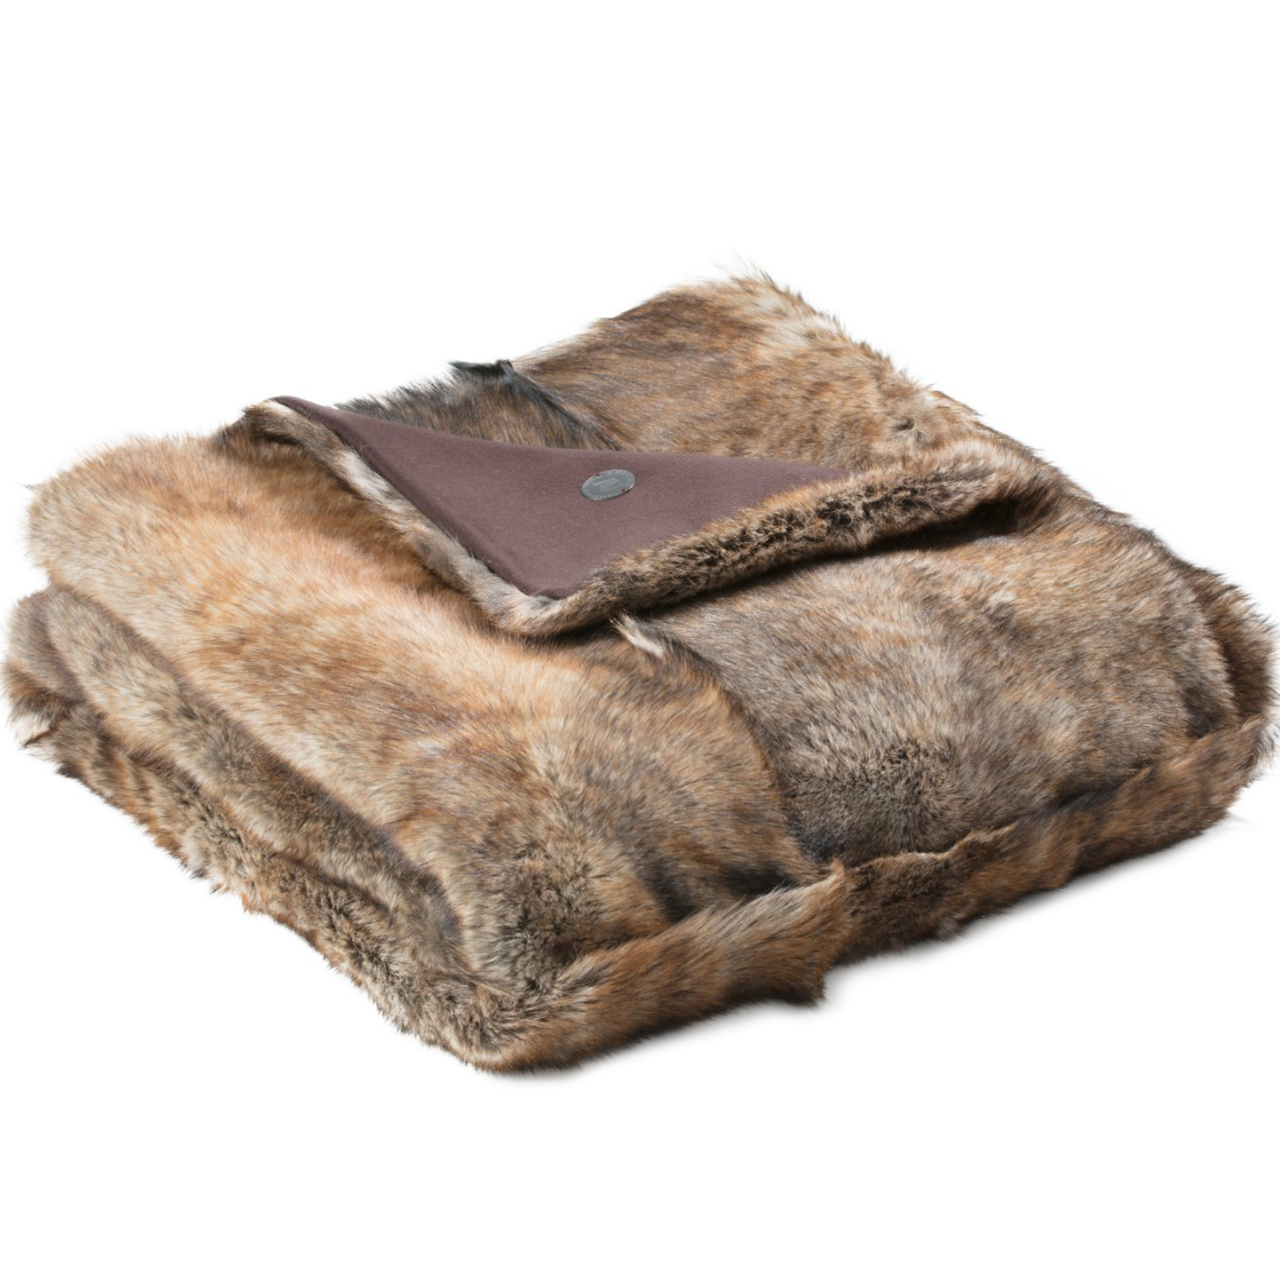 NEW-Shearling Throw- Extra-134x150cm (STEXTBR134150) - ANVOGG FEEL SHEARLING | ANVOGG